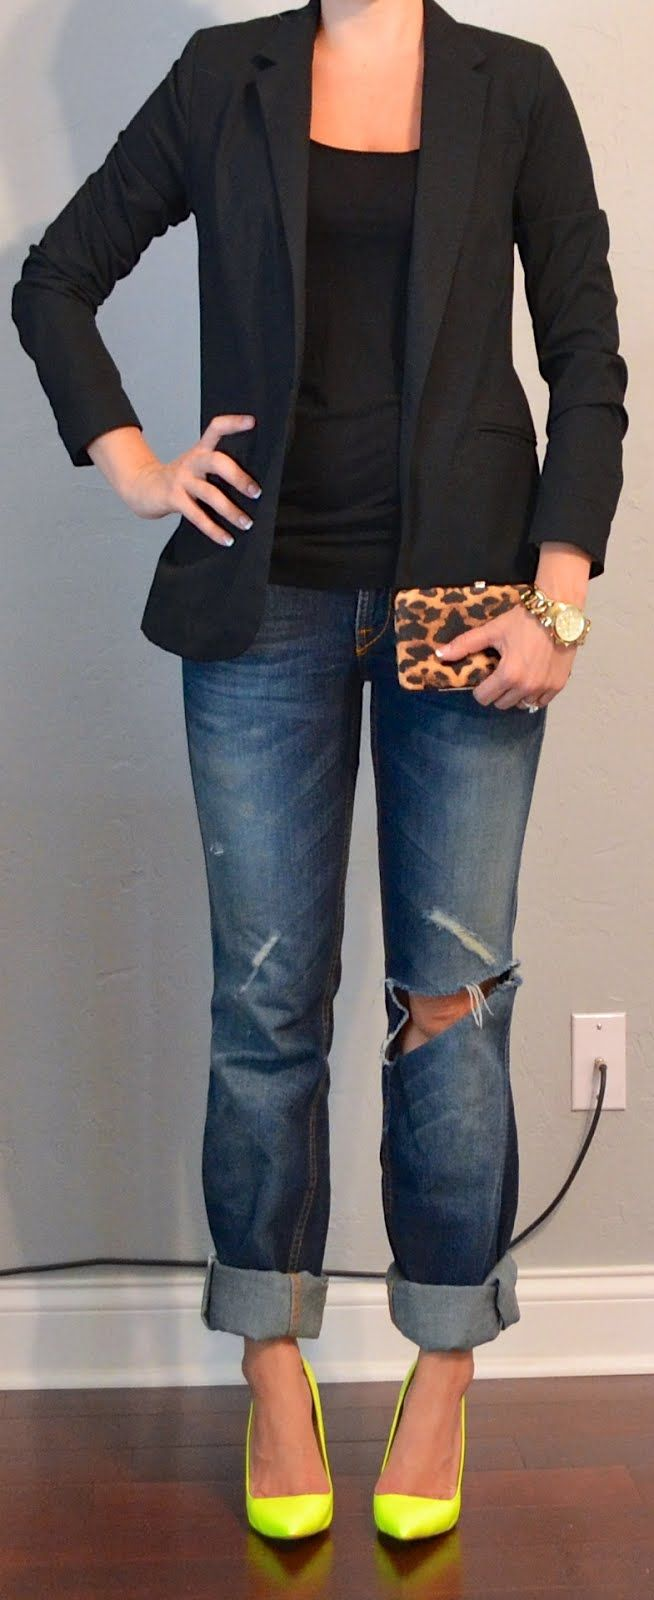 Jeans, blazer, bright heels (maybe in a diff color)